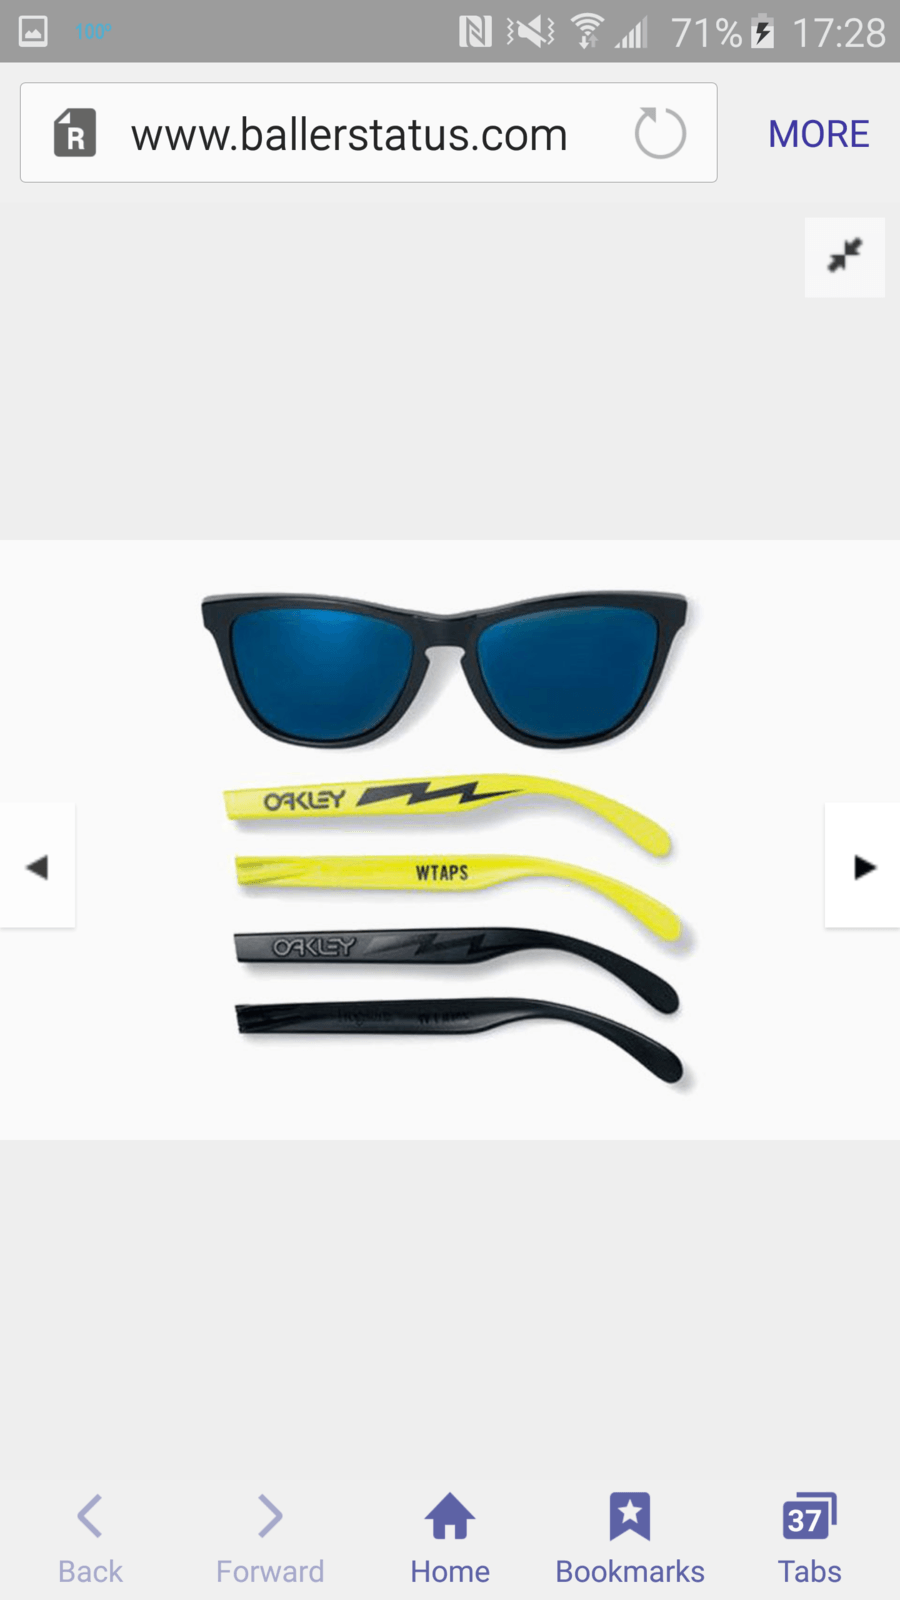 WTAPS Frogskins - Screenshot_2016-07-07-17-28-10.png